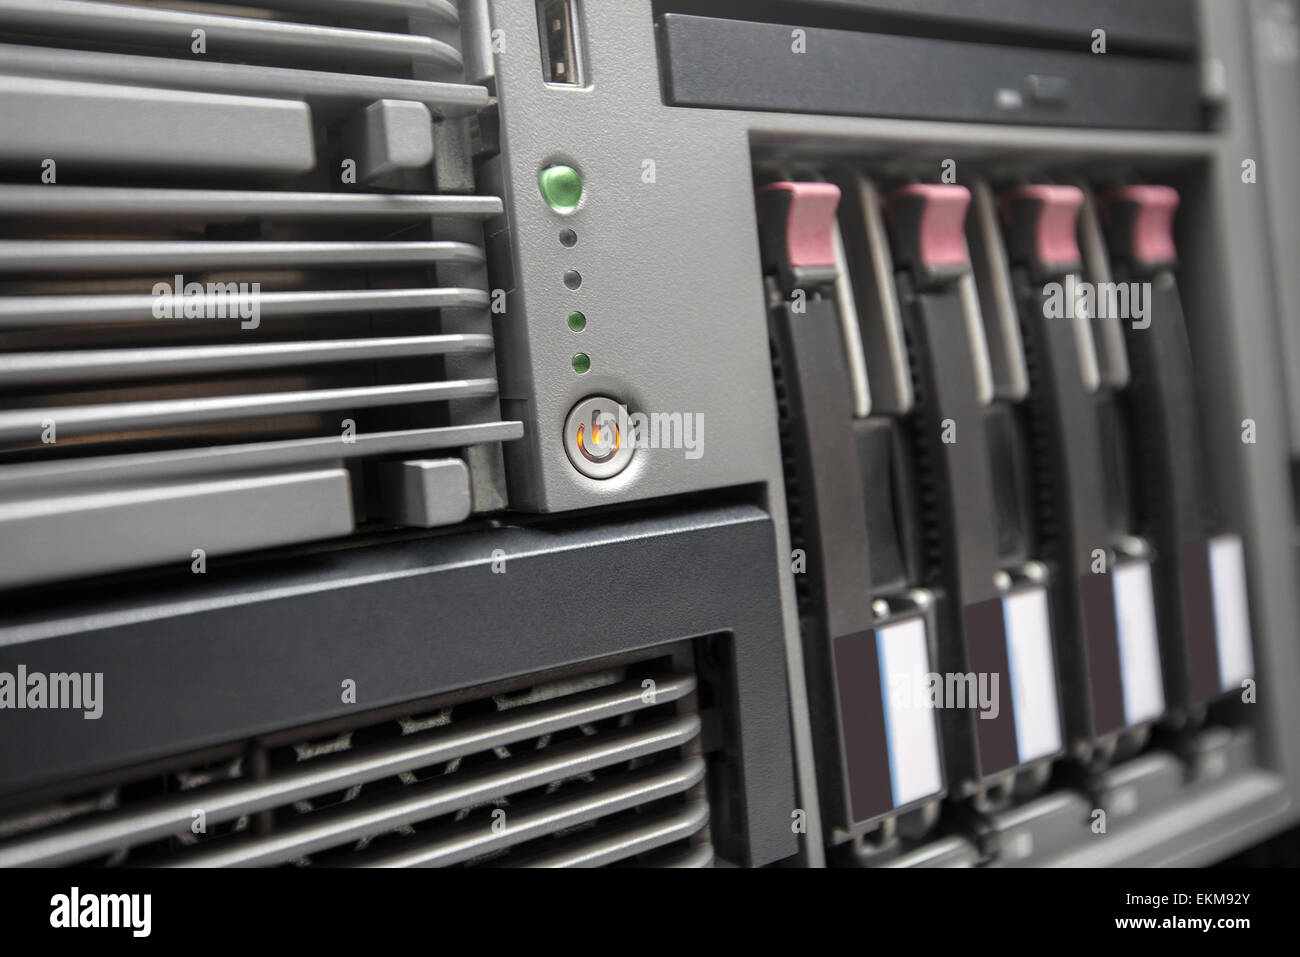 Network Server with Hot Swap Hard Drives installed in a rack - Stock Image